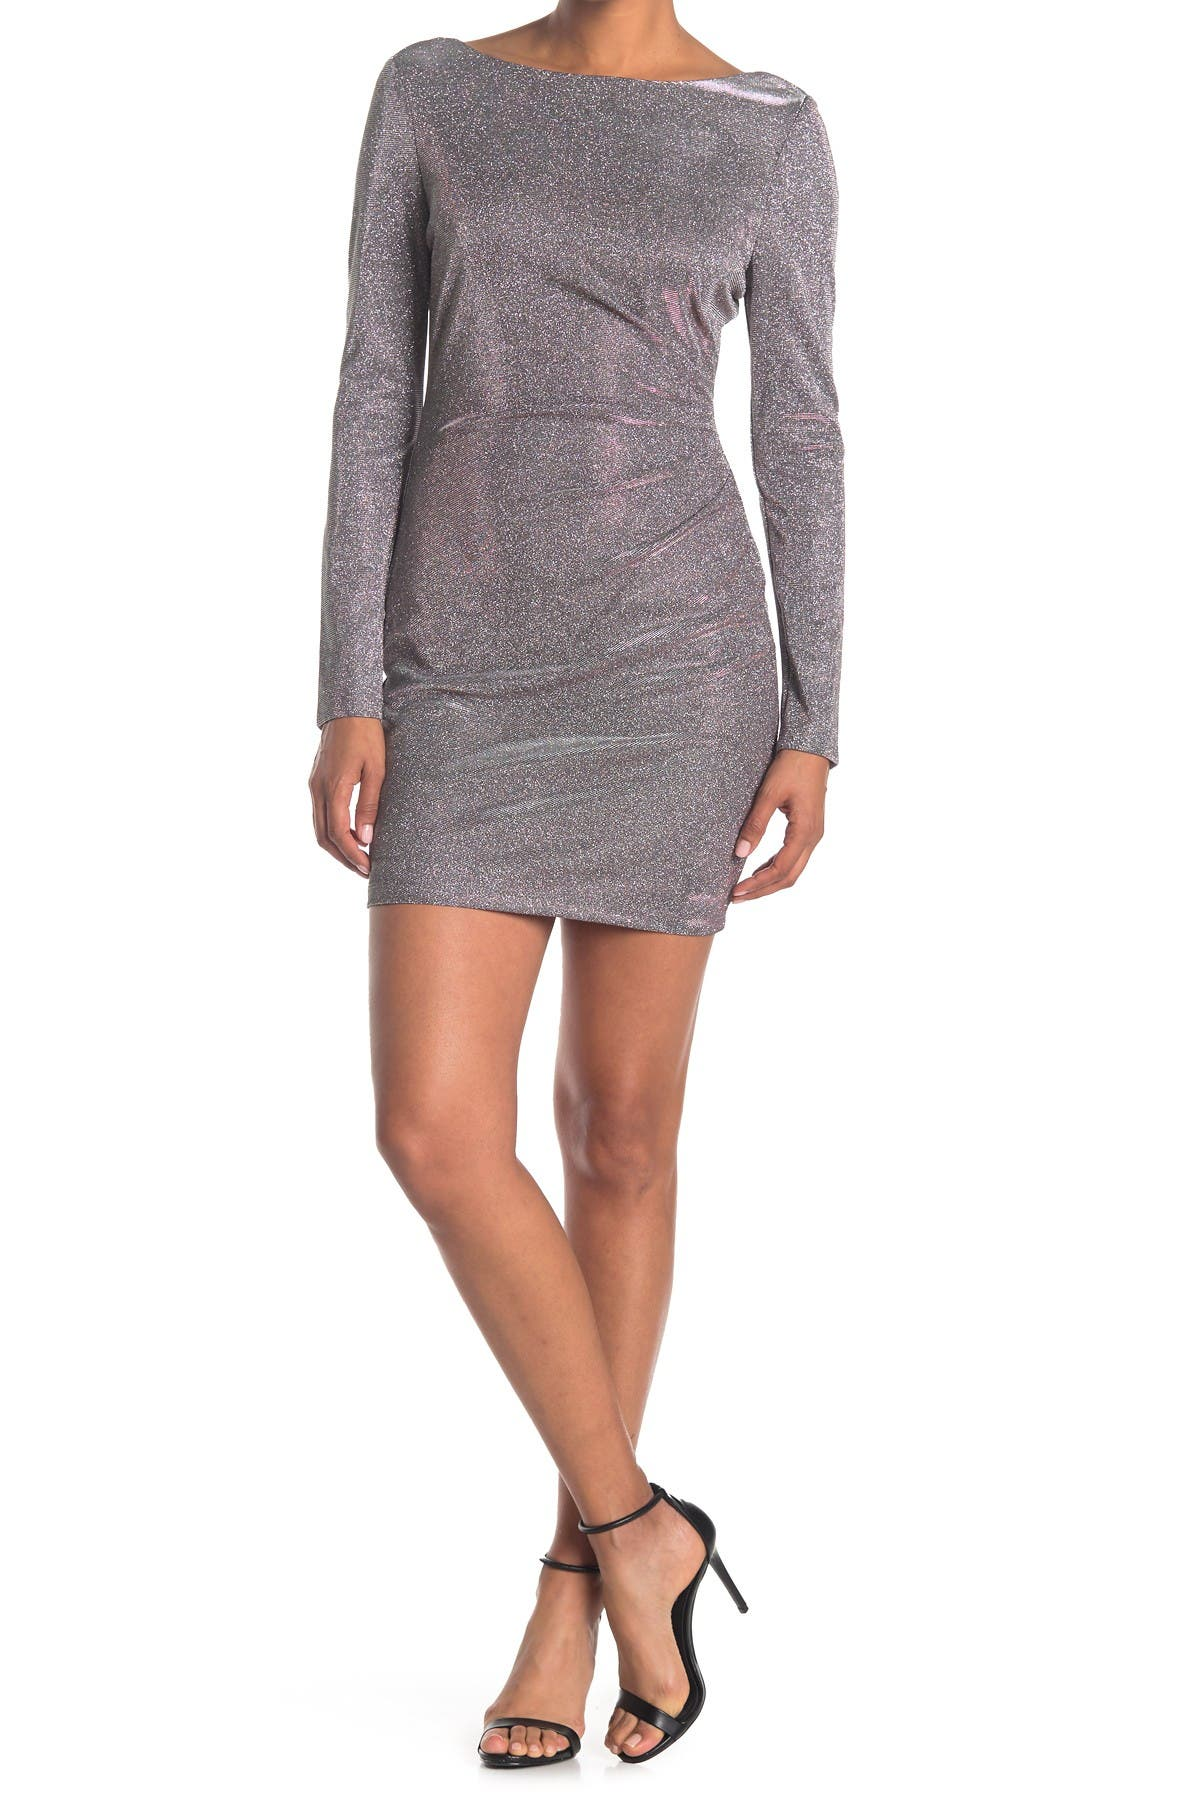 Image of JUMP Metallic Boatneck Long Sleeve Mini Dress